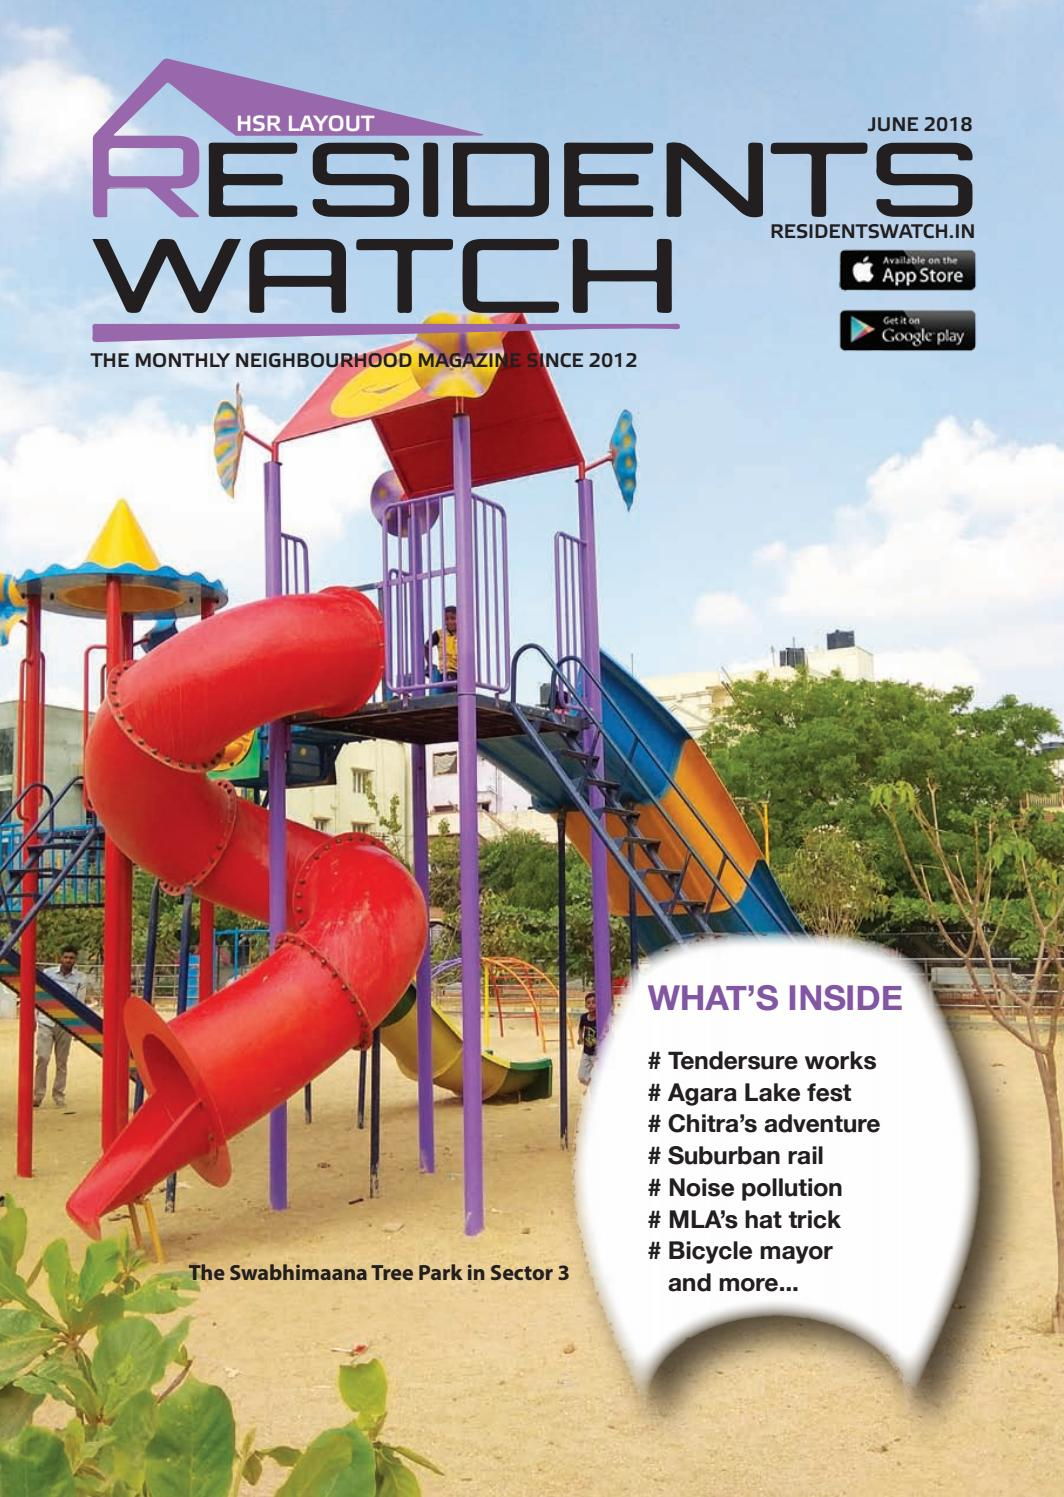 HSR Layout Residents Watch - May 2018 by Residents Watch - issuu